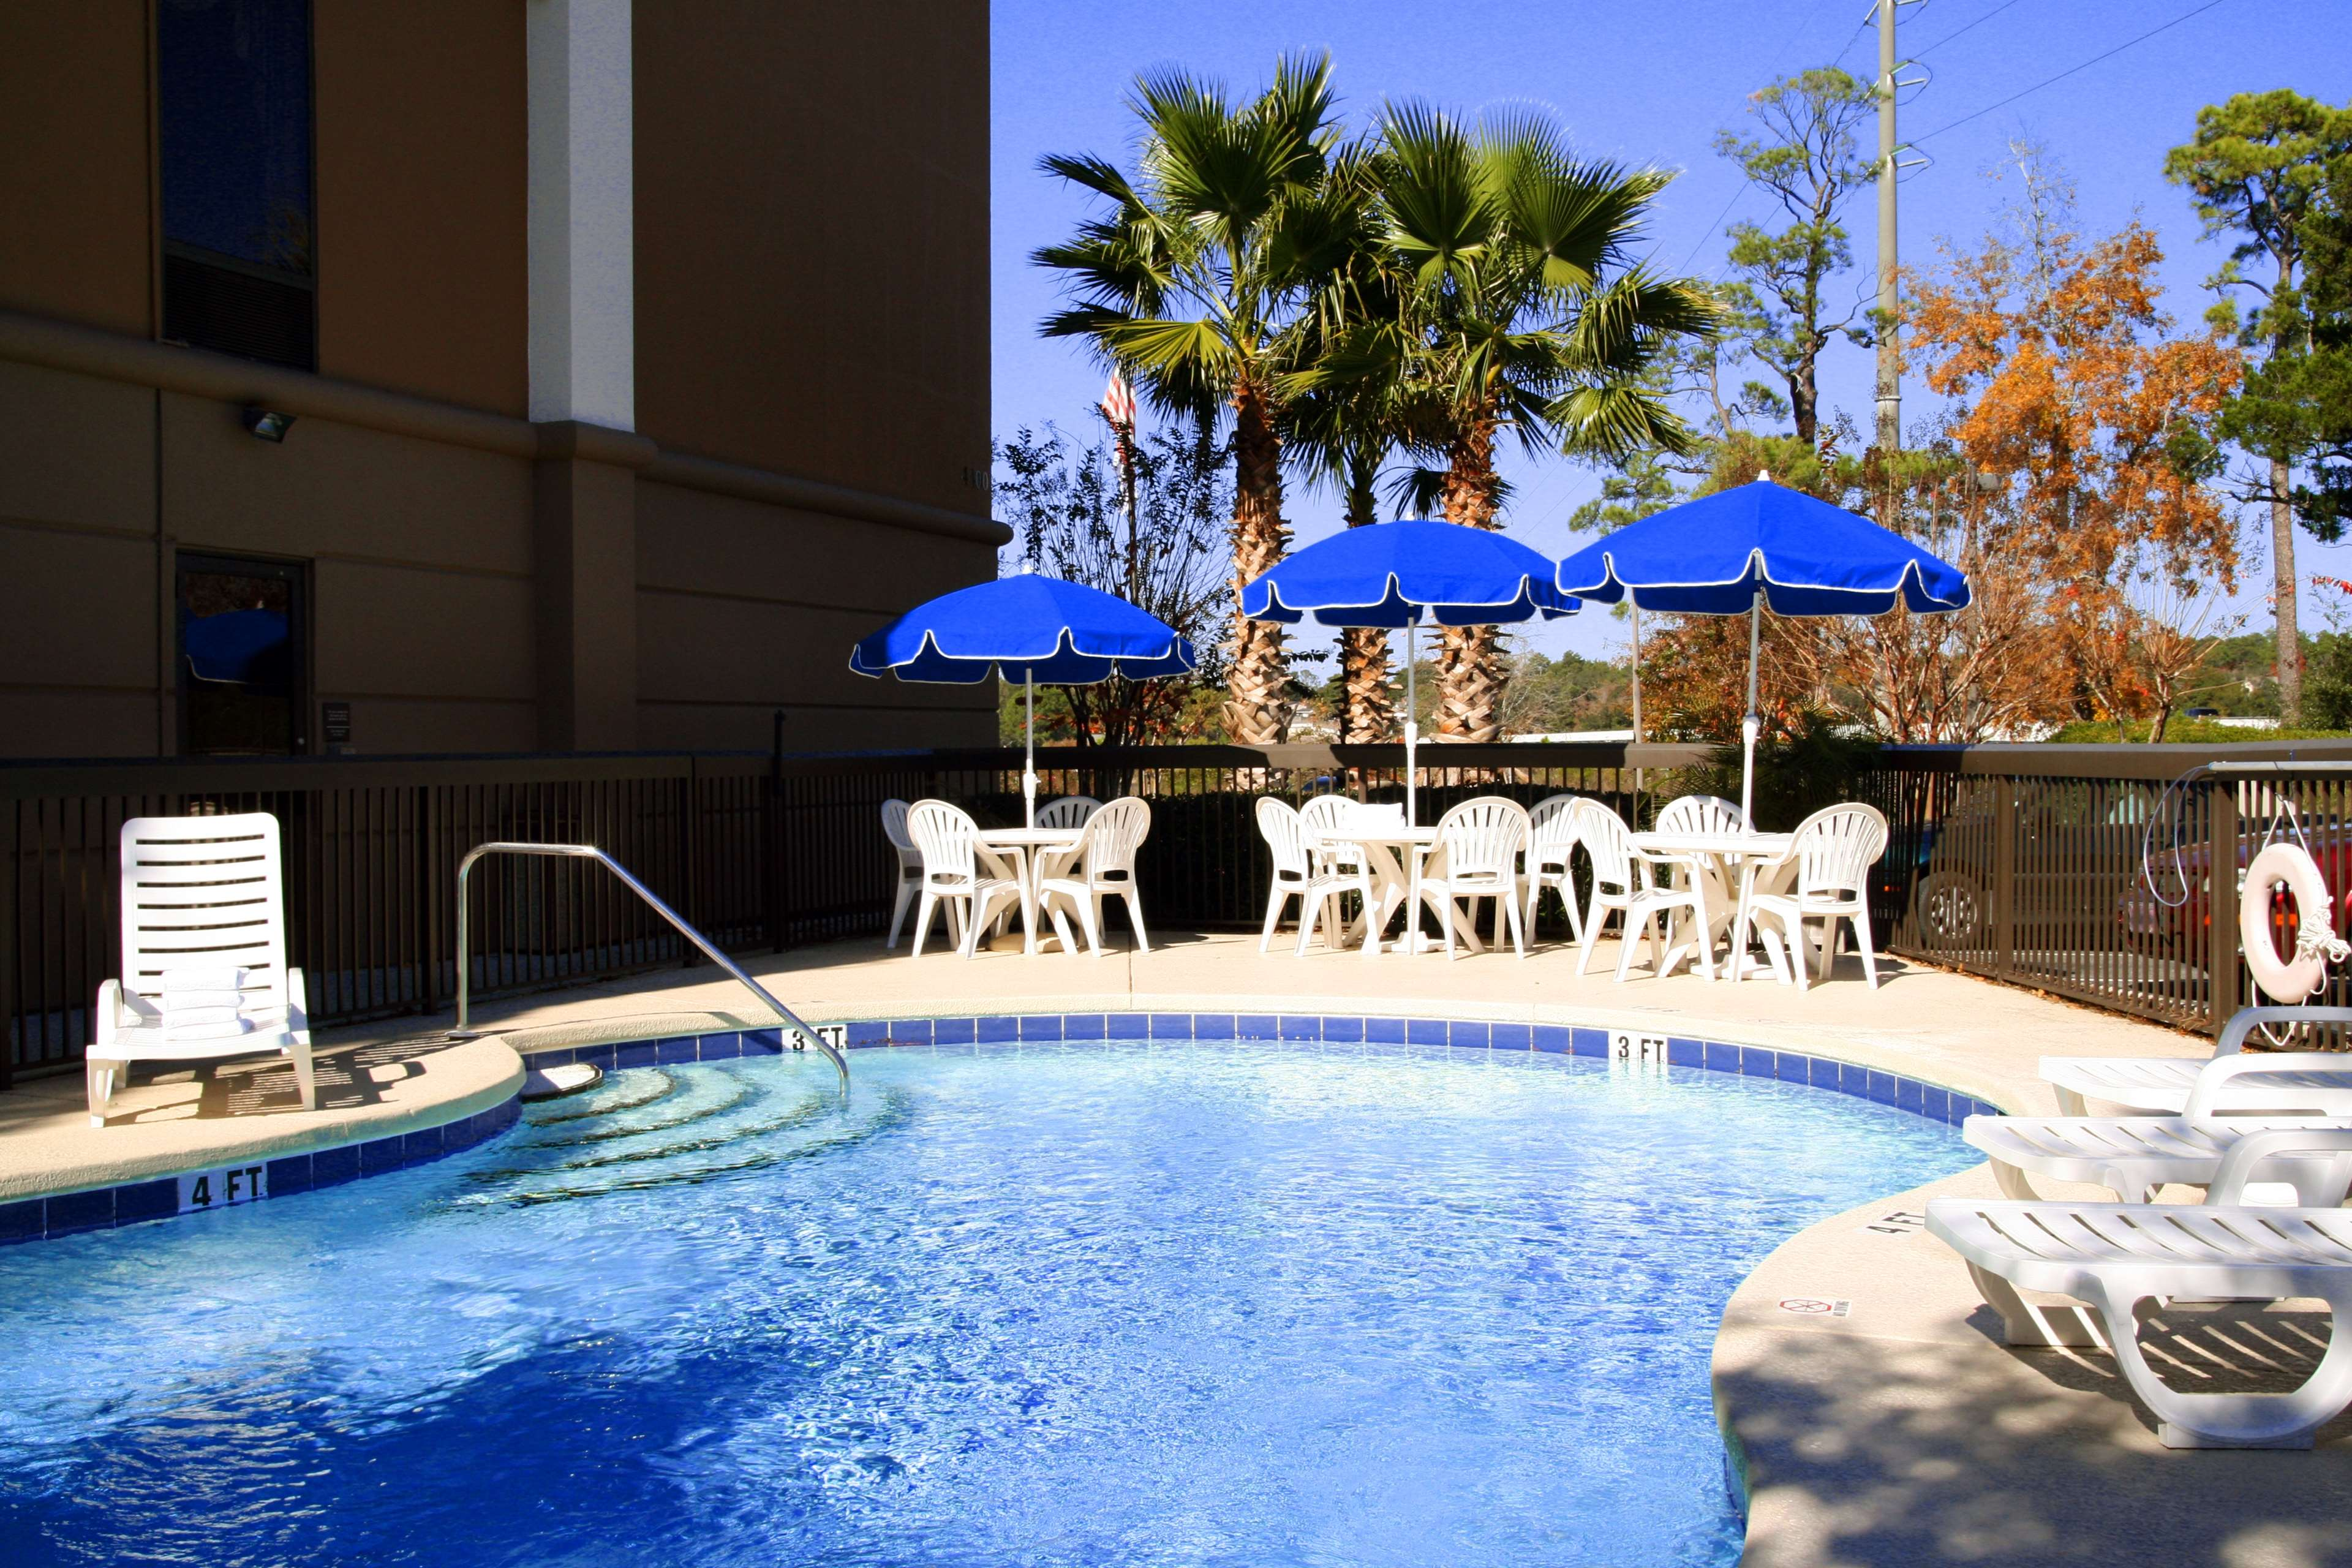 Hampton Inn Niceville-Eglin Air Force Base image 5